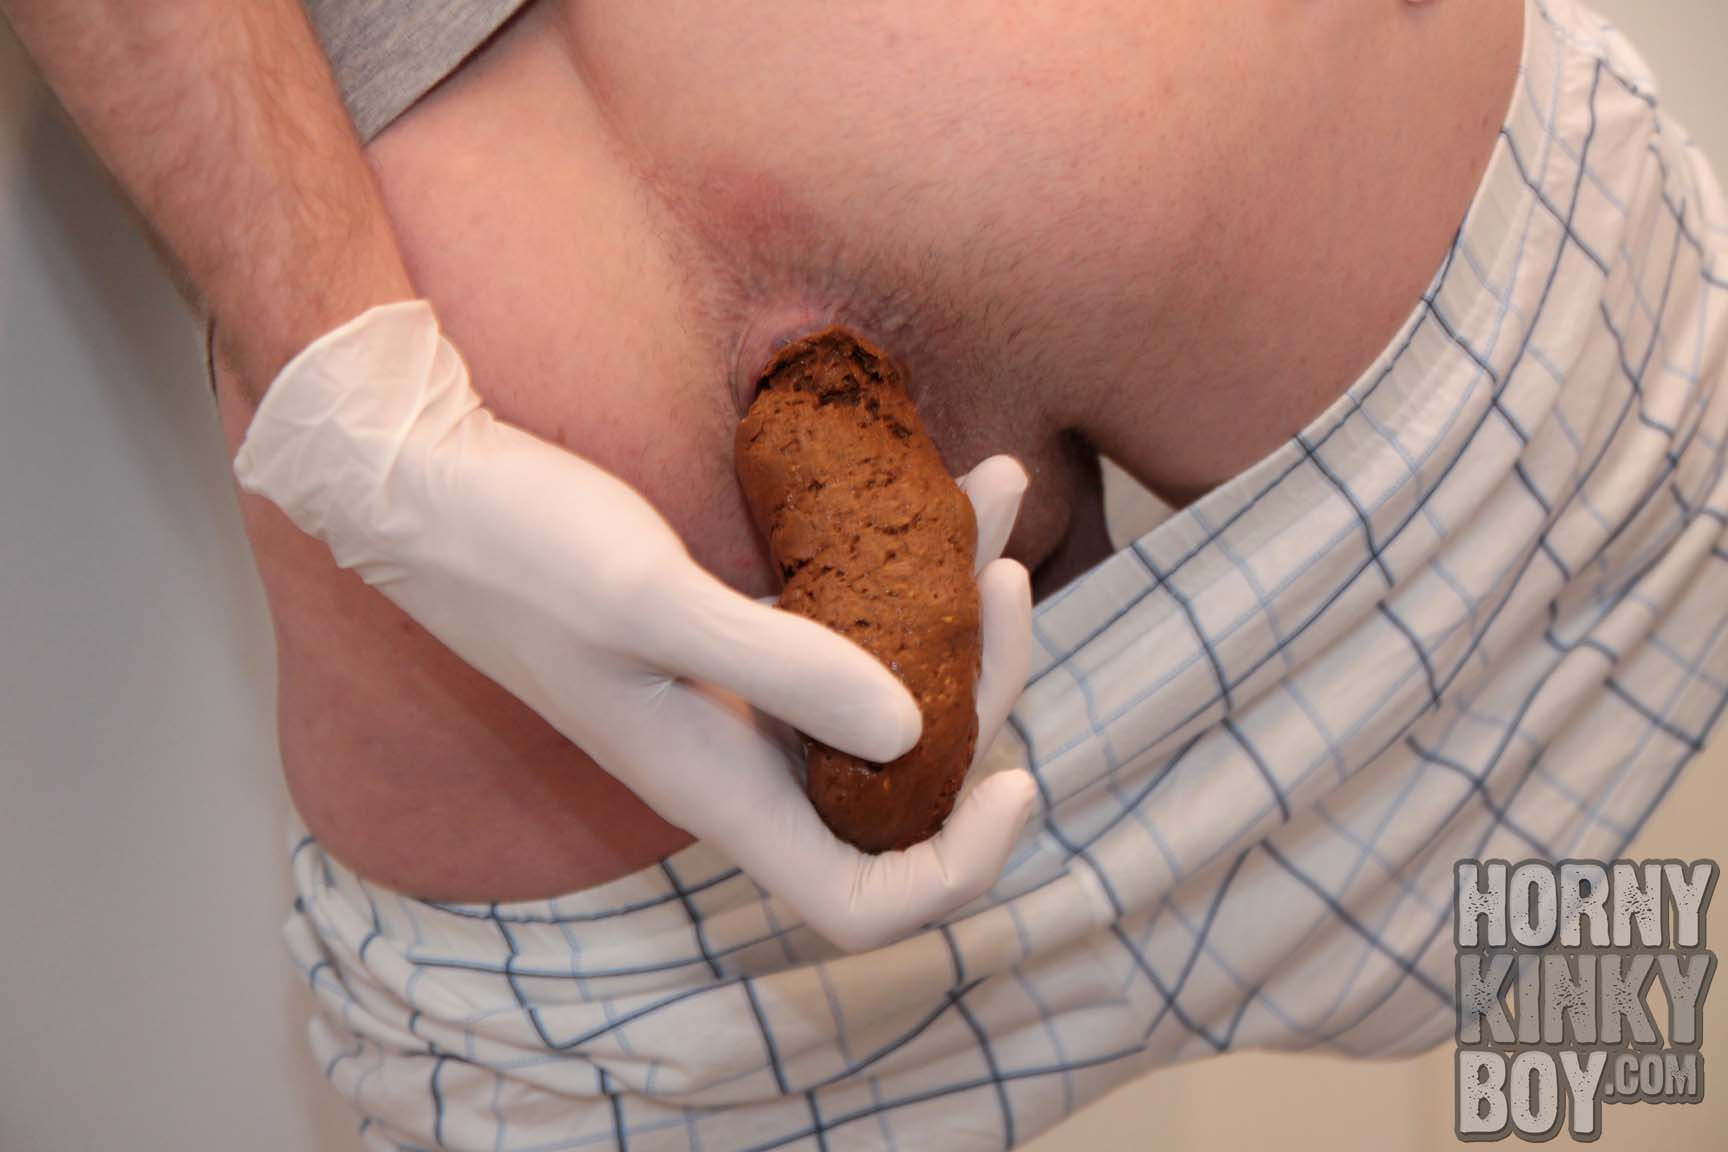 Catching Turd From Poo Hole With Latex Gloves